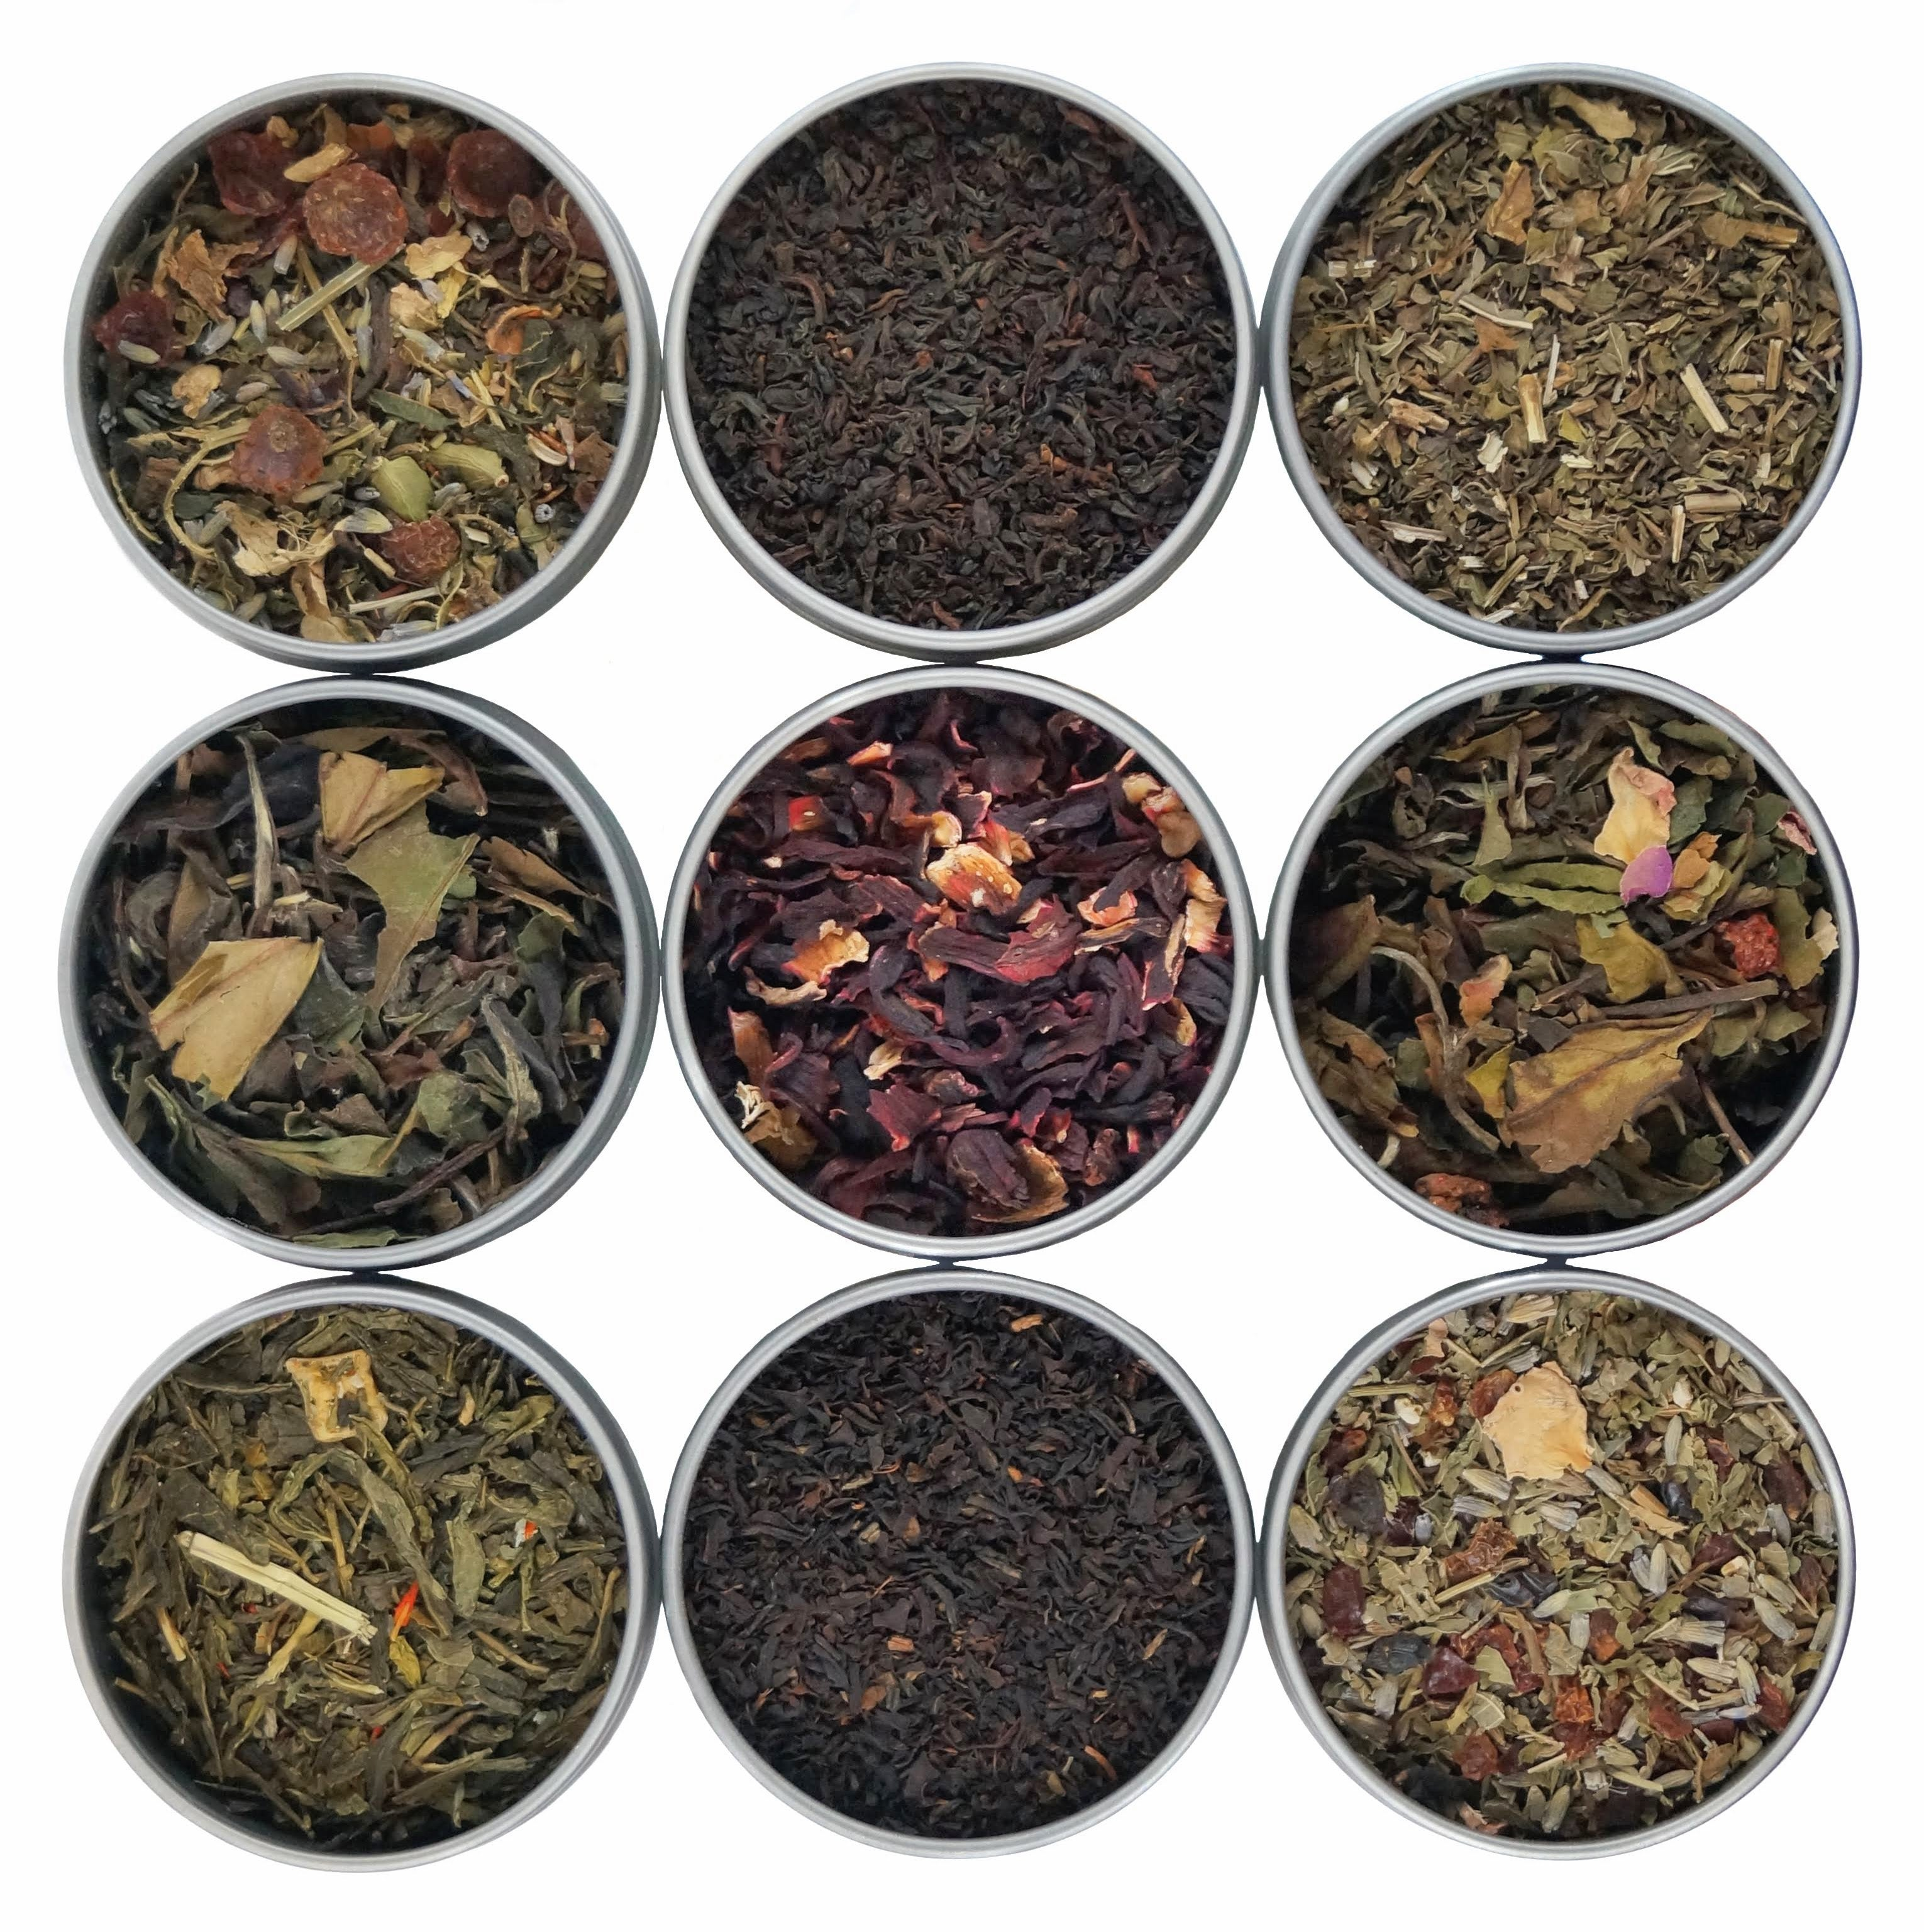 Kosher Tea - Kosher Loose Leaf Tea - Certified Kosher By OU & Earth Kosher - Premium Kosher Teas & Herbal Tisanes - Heavenly Tea Leaves